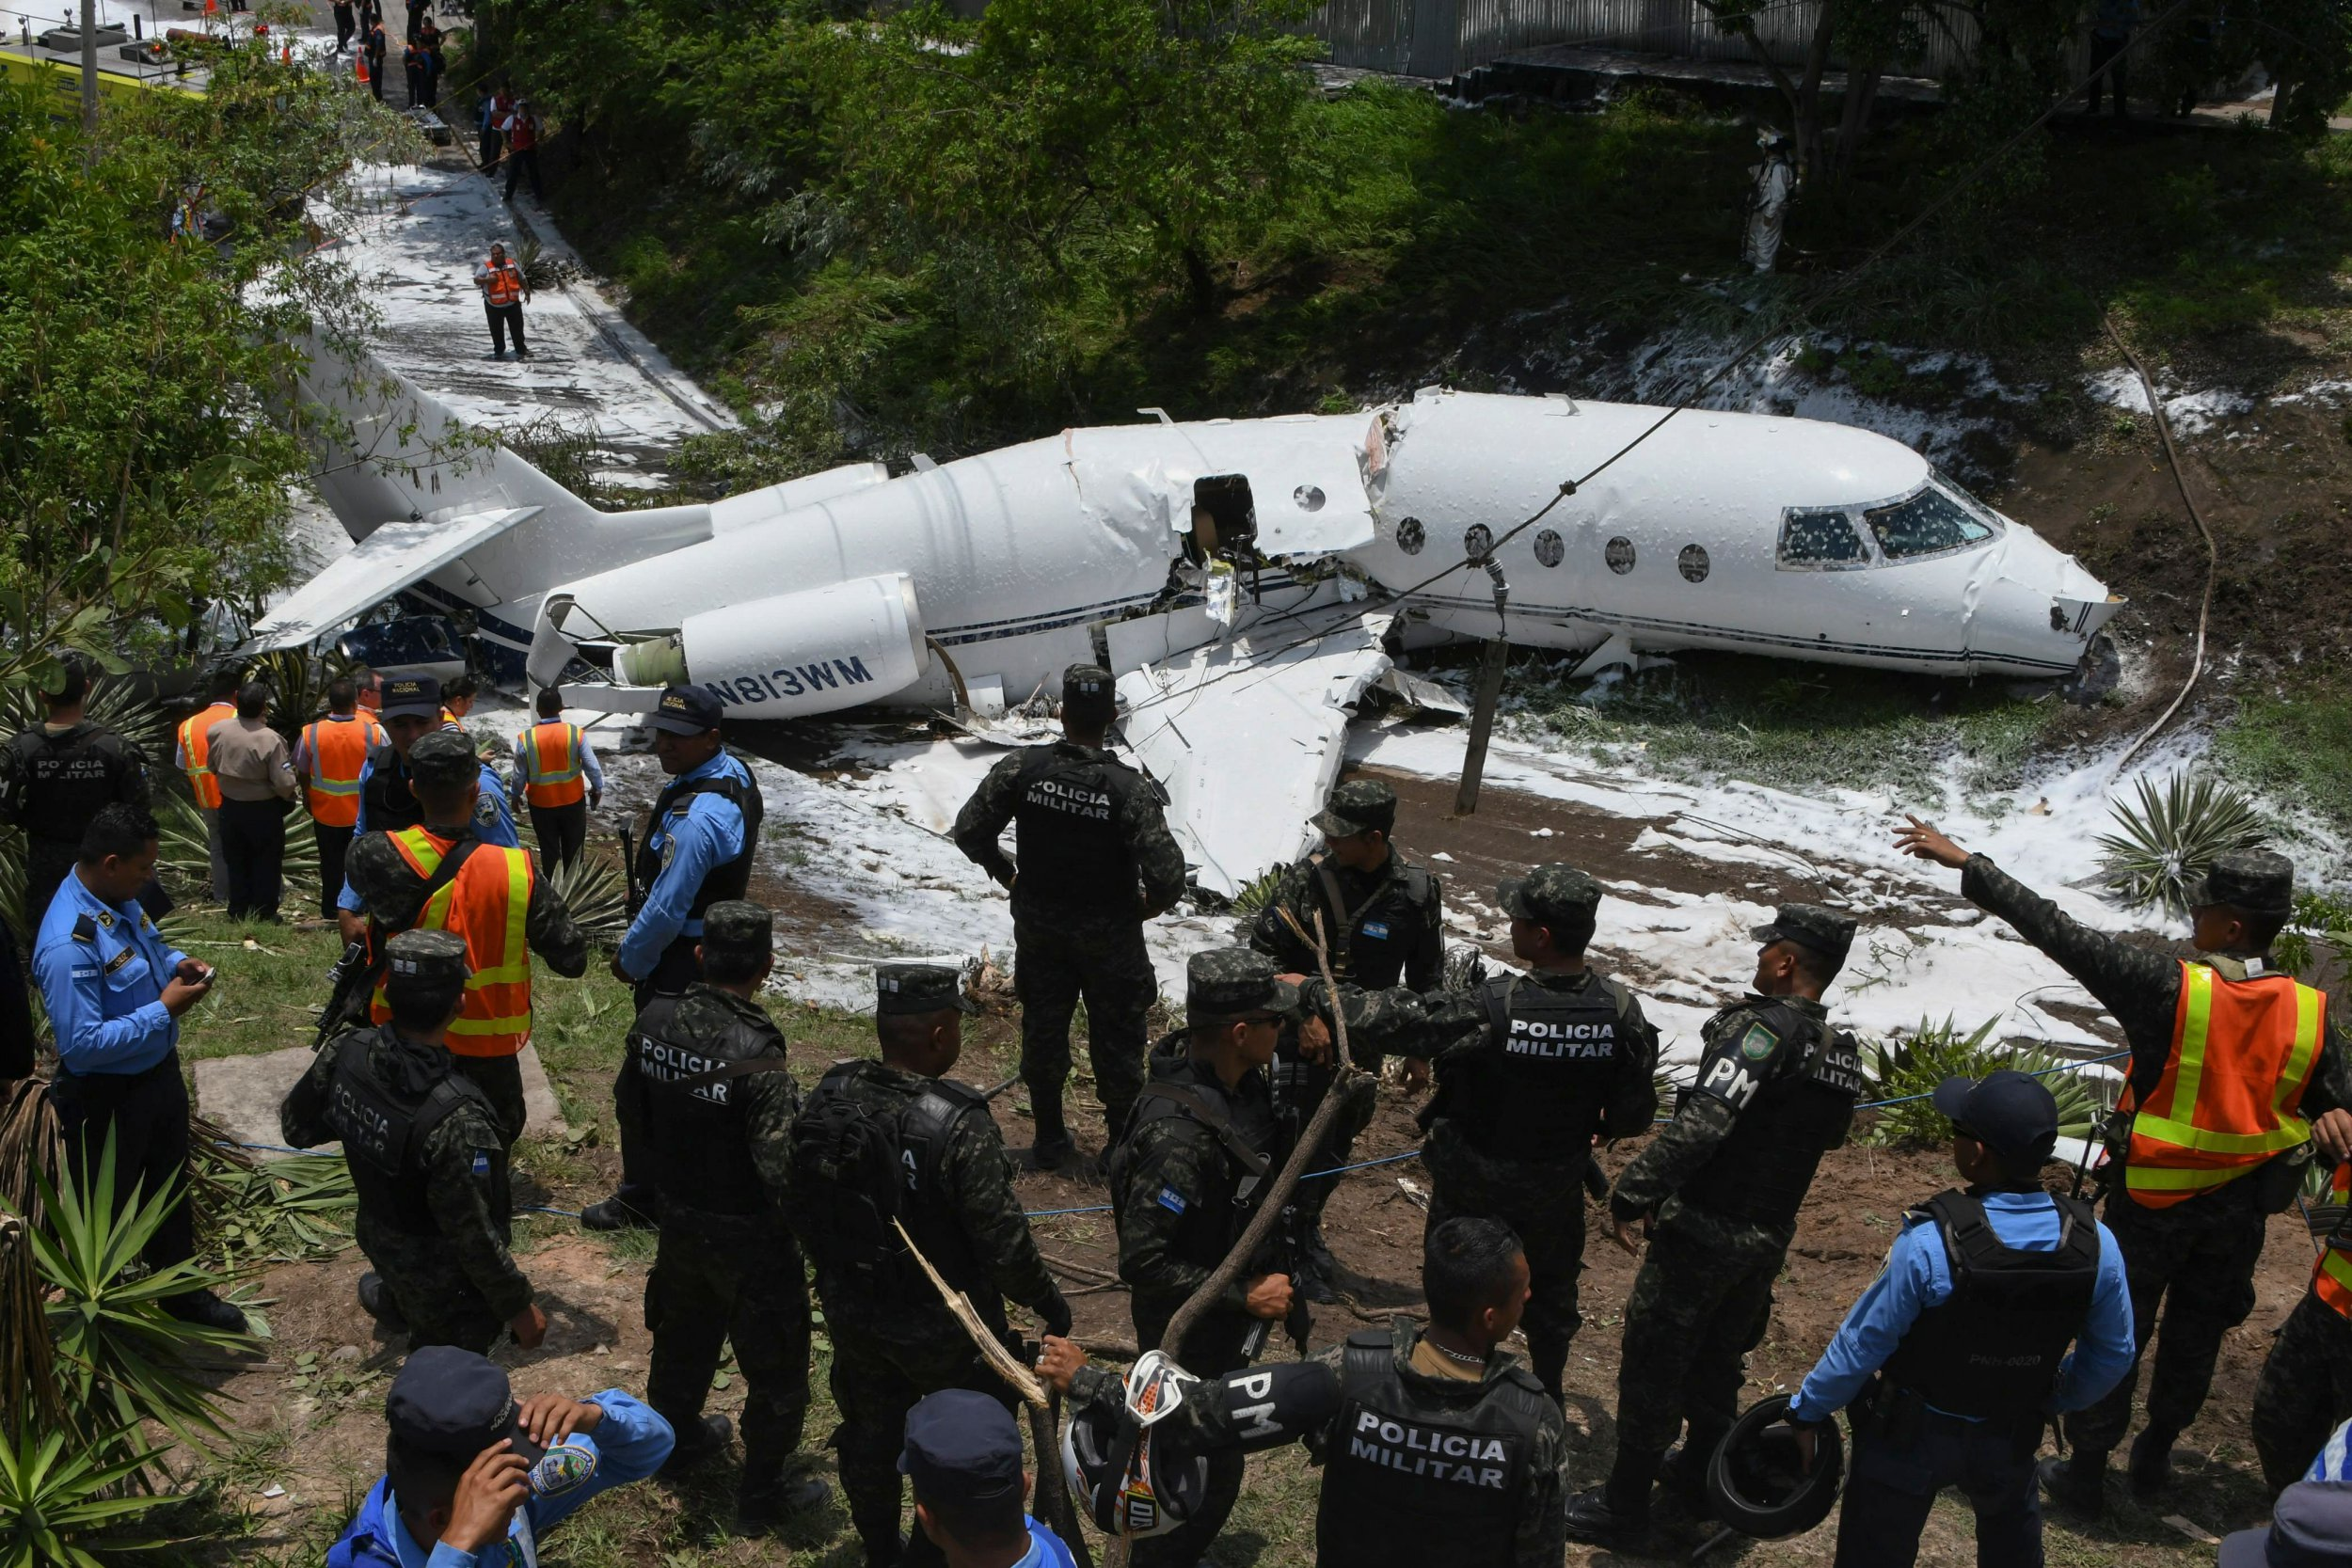 TOPSHOT - Emergency personnel, Honduran soldiers and police officers work at the site of an accident, after a plane went off the runway at Toncontin International airport and collapsed over a busy boulevard in Tegucigalpa on May 22, 2018. - At least six US passengers were injured in the accident. (Photo by Orlando SIERRA / AFP) (Photo credit should read ORLANDO SIERRA/AFP/Getty Images)